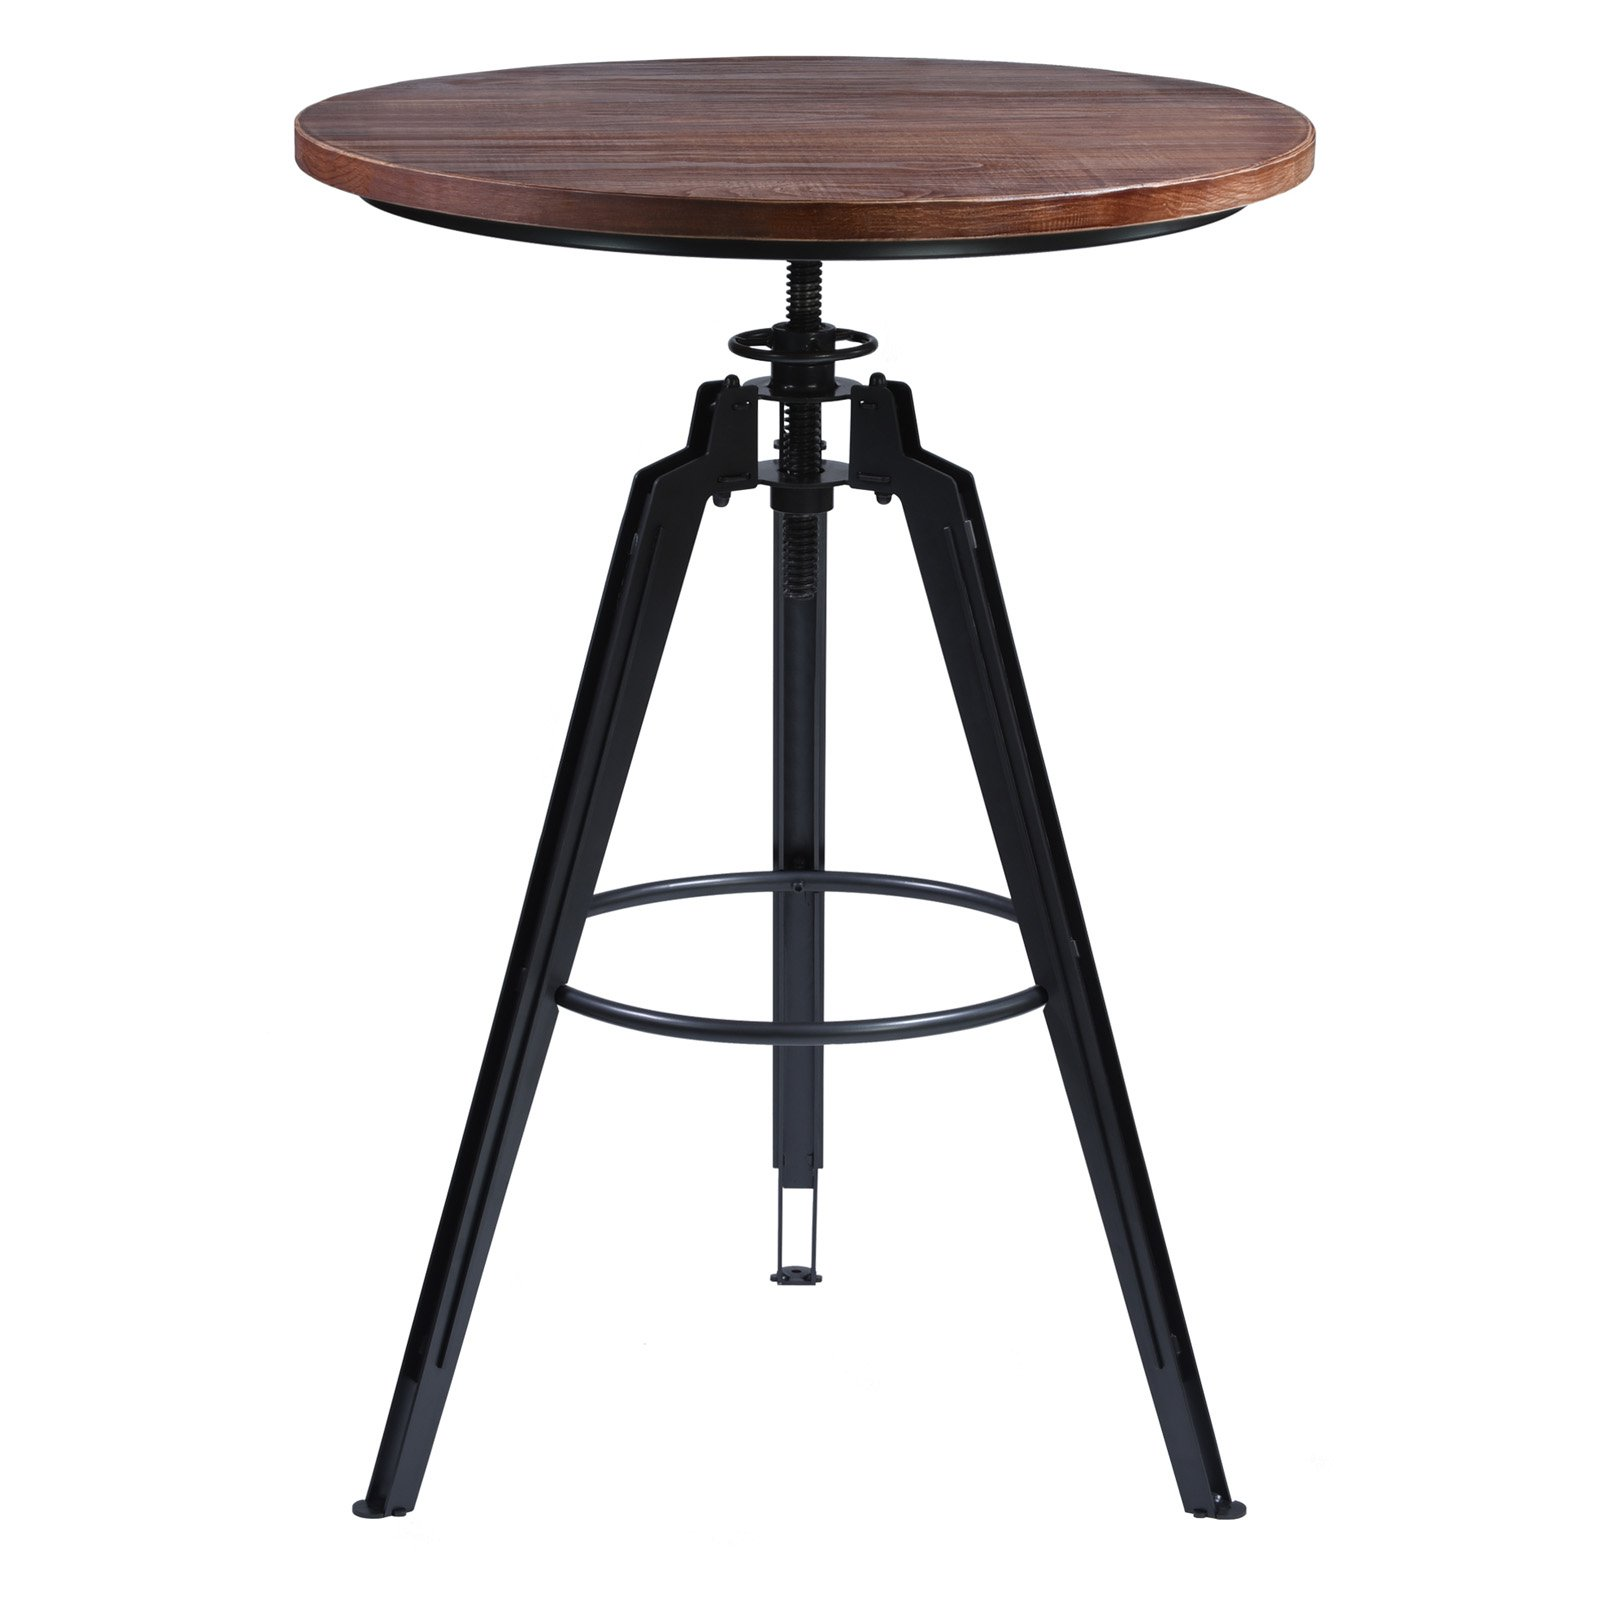 Armen Living Tribeca Pub Table in Industrial Grey Finish with Ash Wood Tabletop by Armen Living